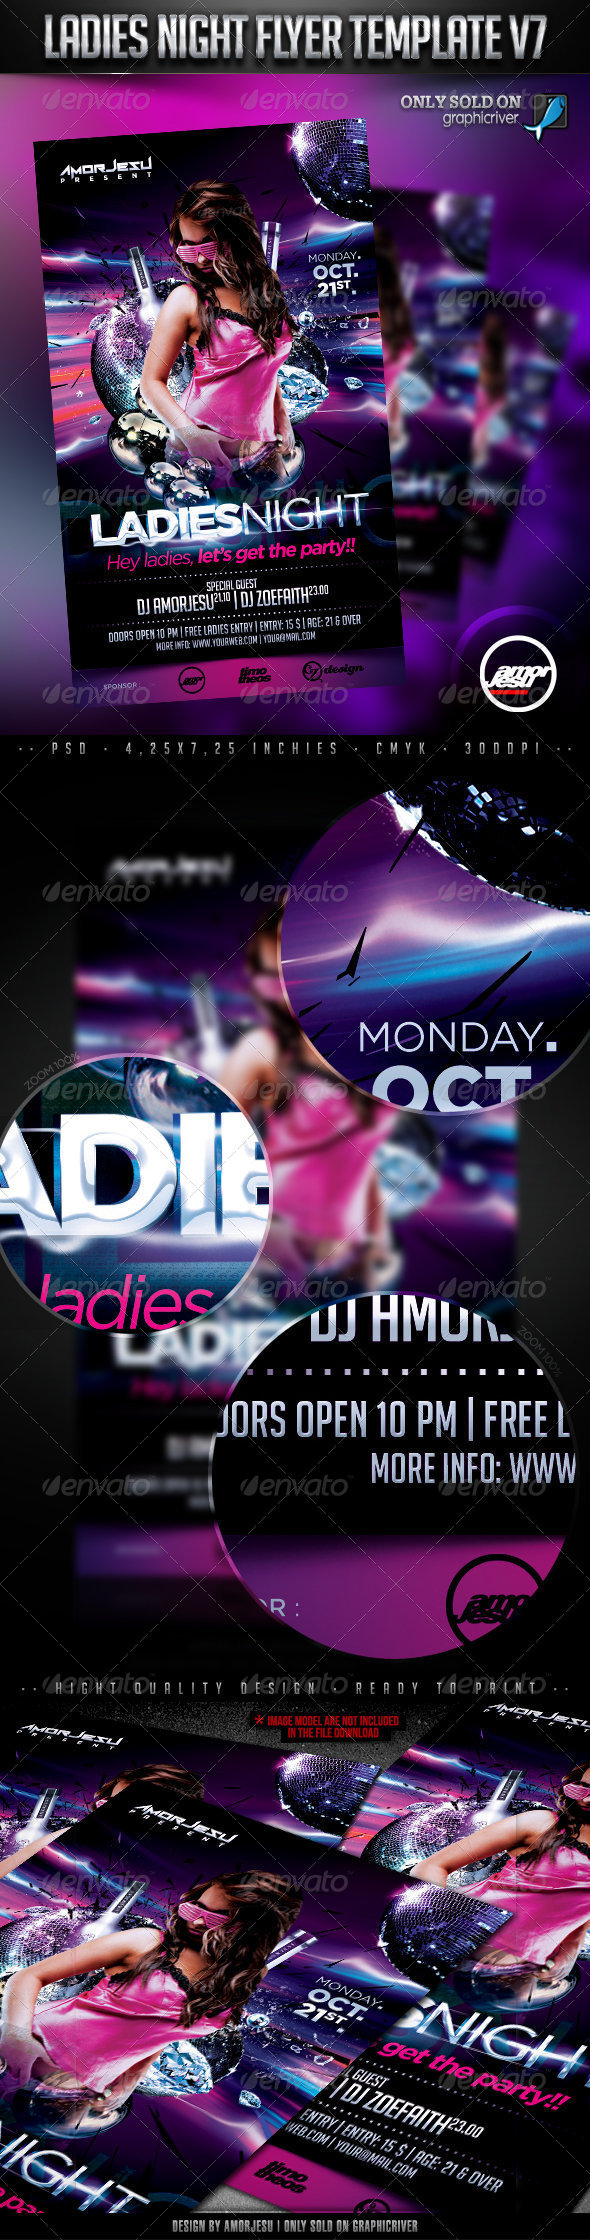 Ladies Night Flyer Template V7 - Clubs & Parties Events